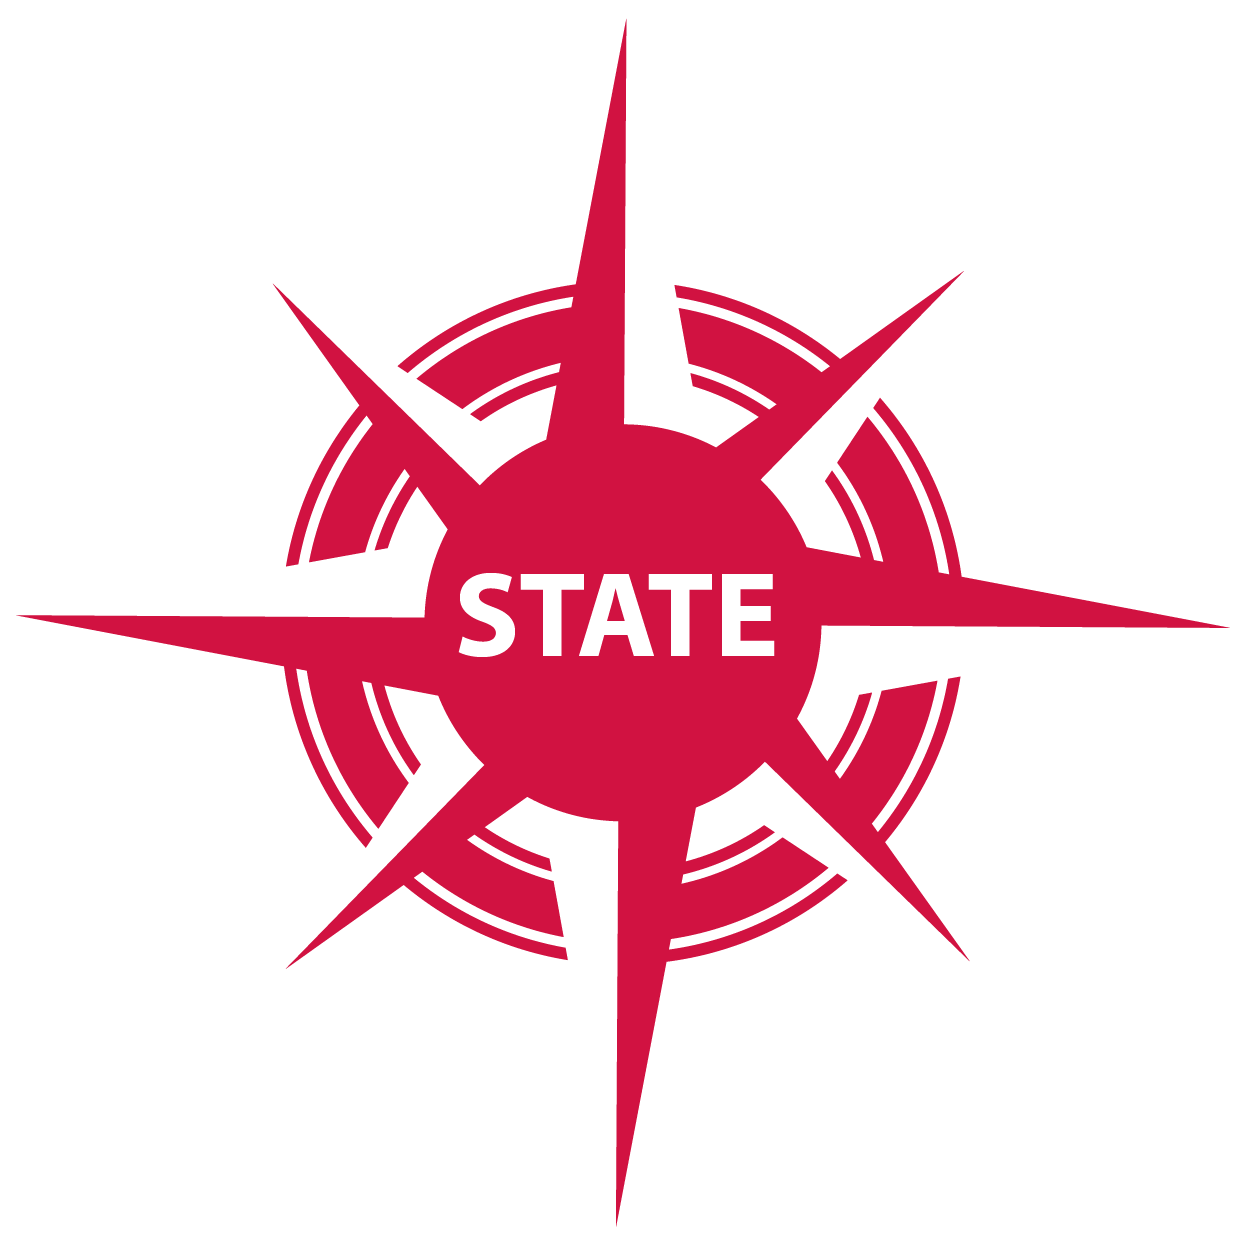 red compass with STATE in center